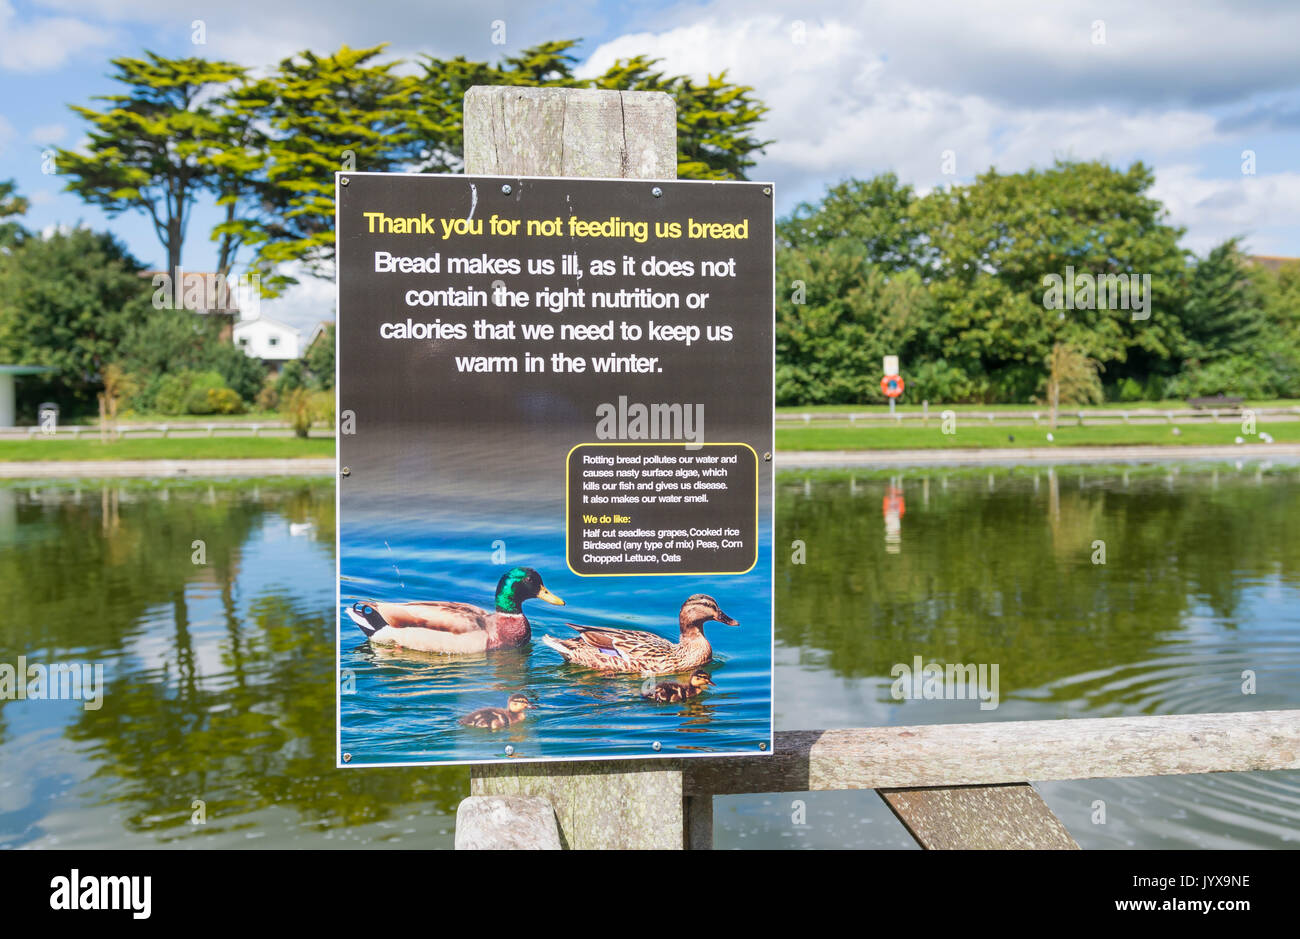 Sign at a lake asking people not to feed bread to ducks, as it makes them ill In Mewsbrook Park, Littlehampton, West Sussex, England, UK. - Stock Image